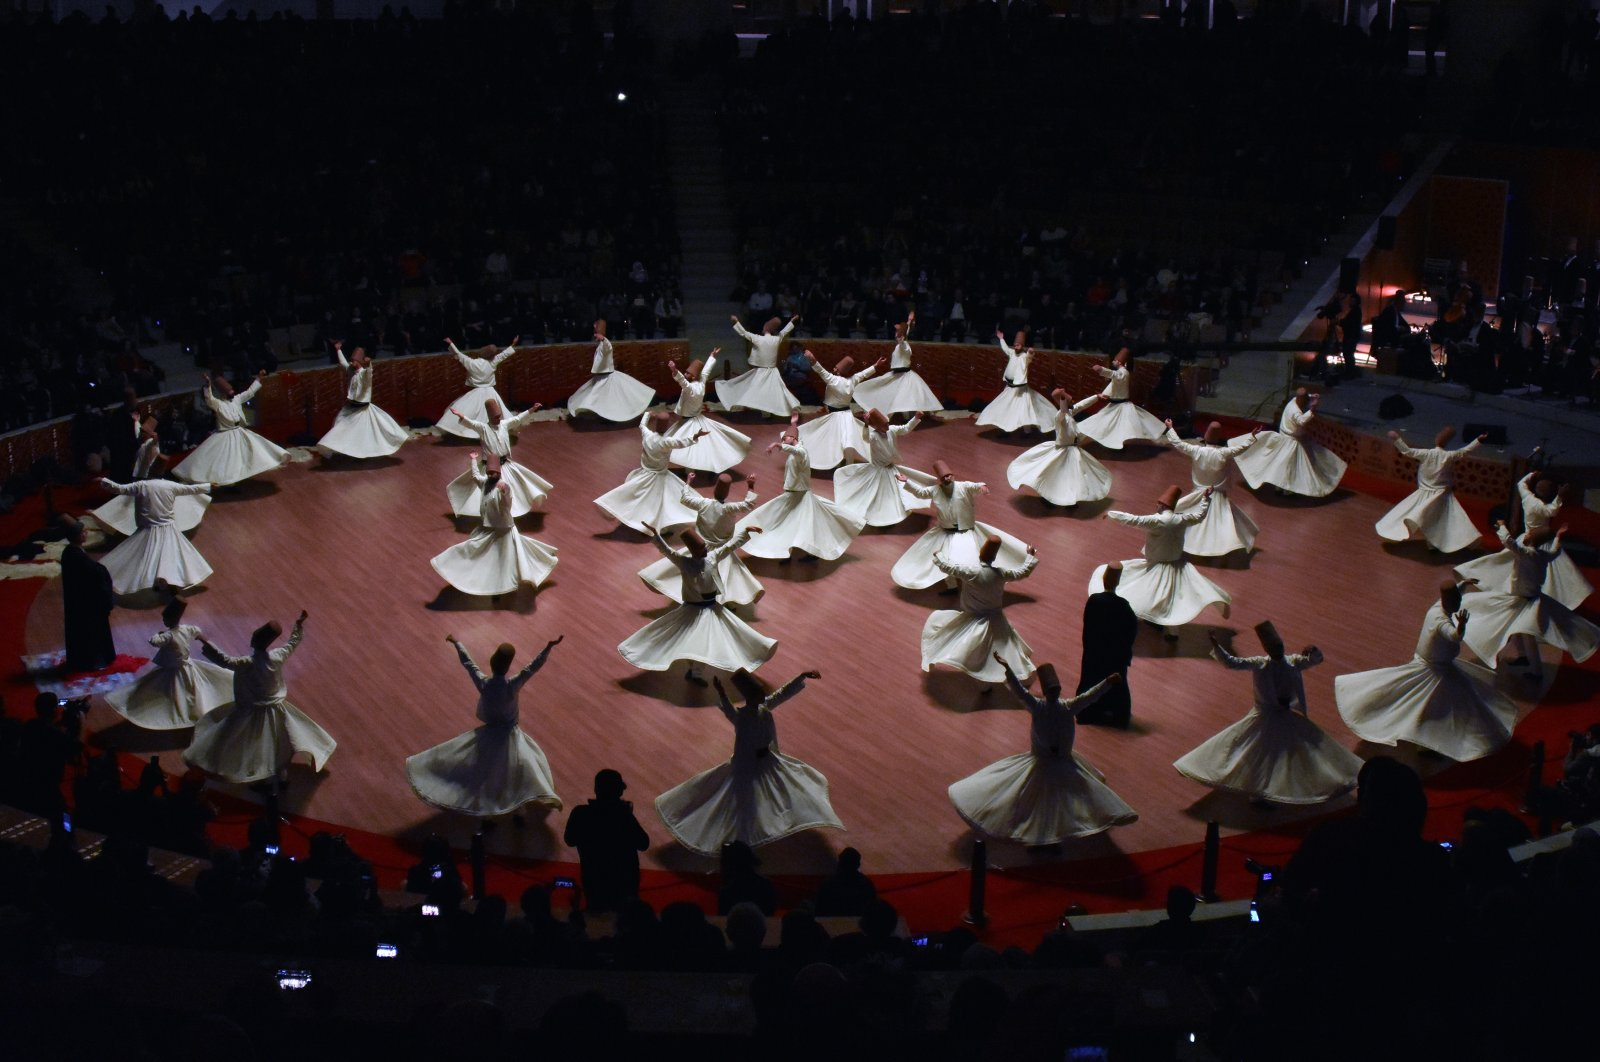 Whirling dervishes perform the Sema during a past Şeb-i Arus ceremony in Konya in this photo handed out on Dec. 5, 2020. (AA PHOTO)